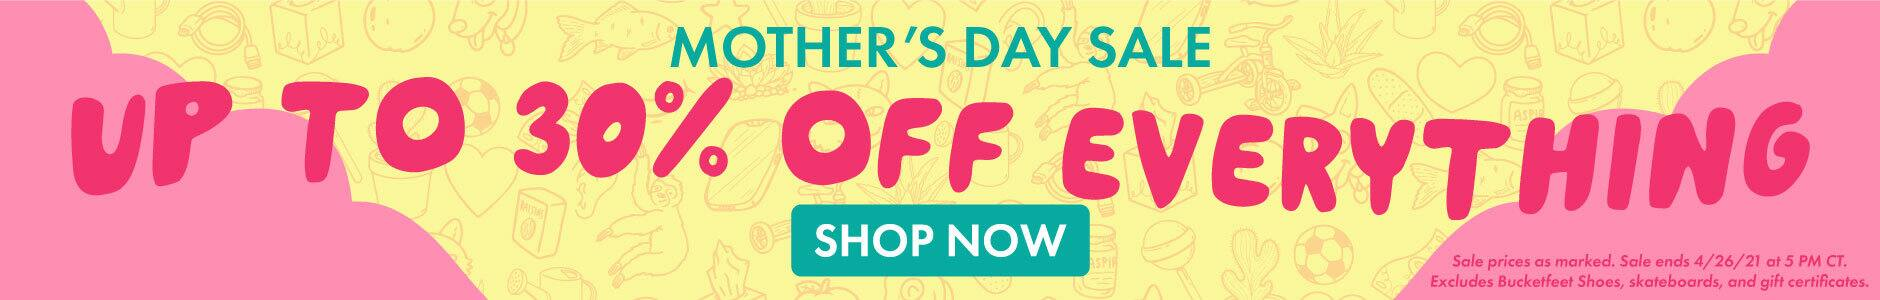 Mother's Day Sale - up to 30% off everything!